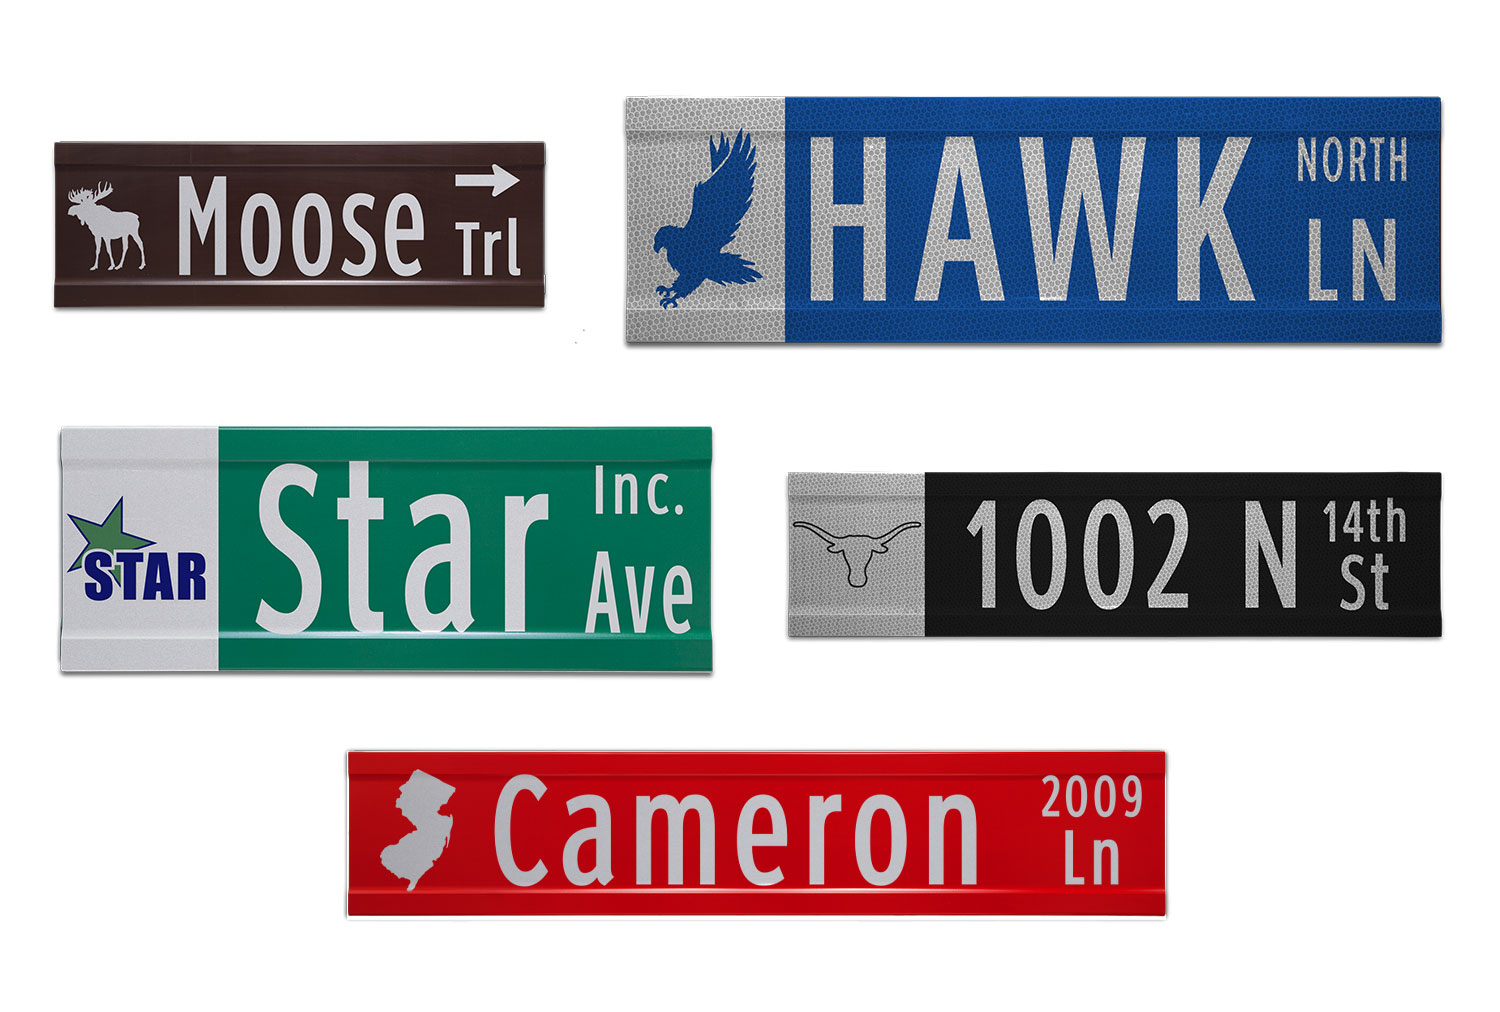 Samples of Printed Extruded Blade Signs with Images and Street Numbers